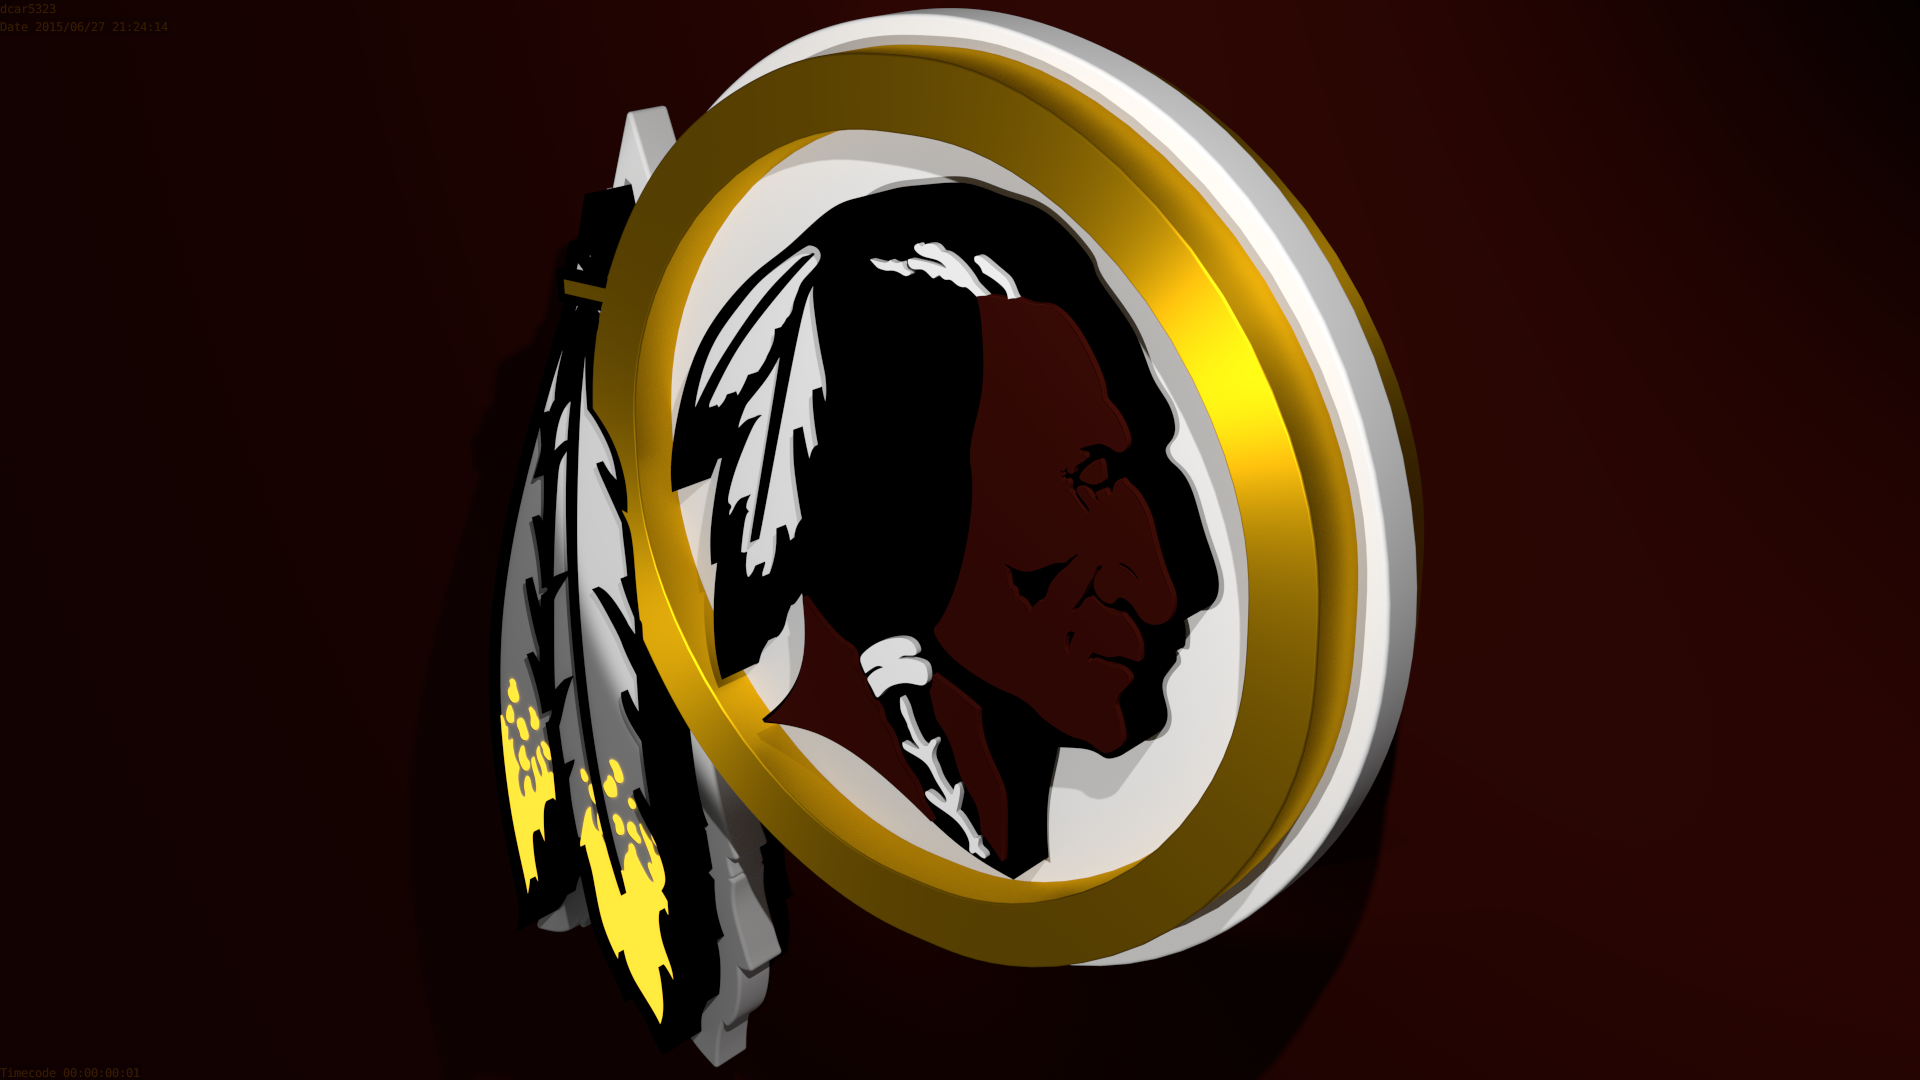 Redskins Wallpaper HD 1920x1080